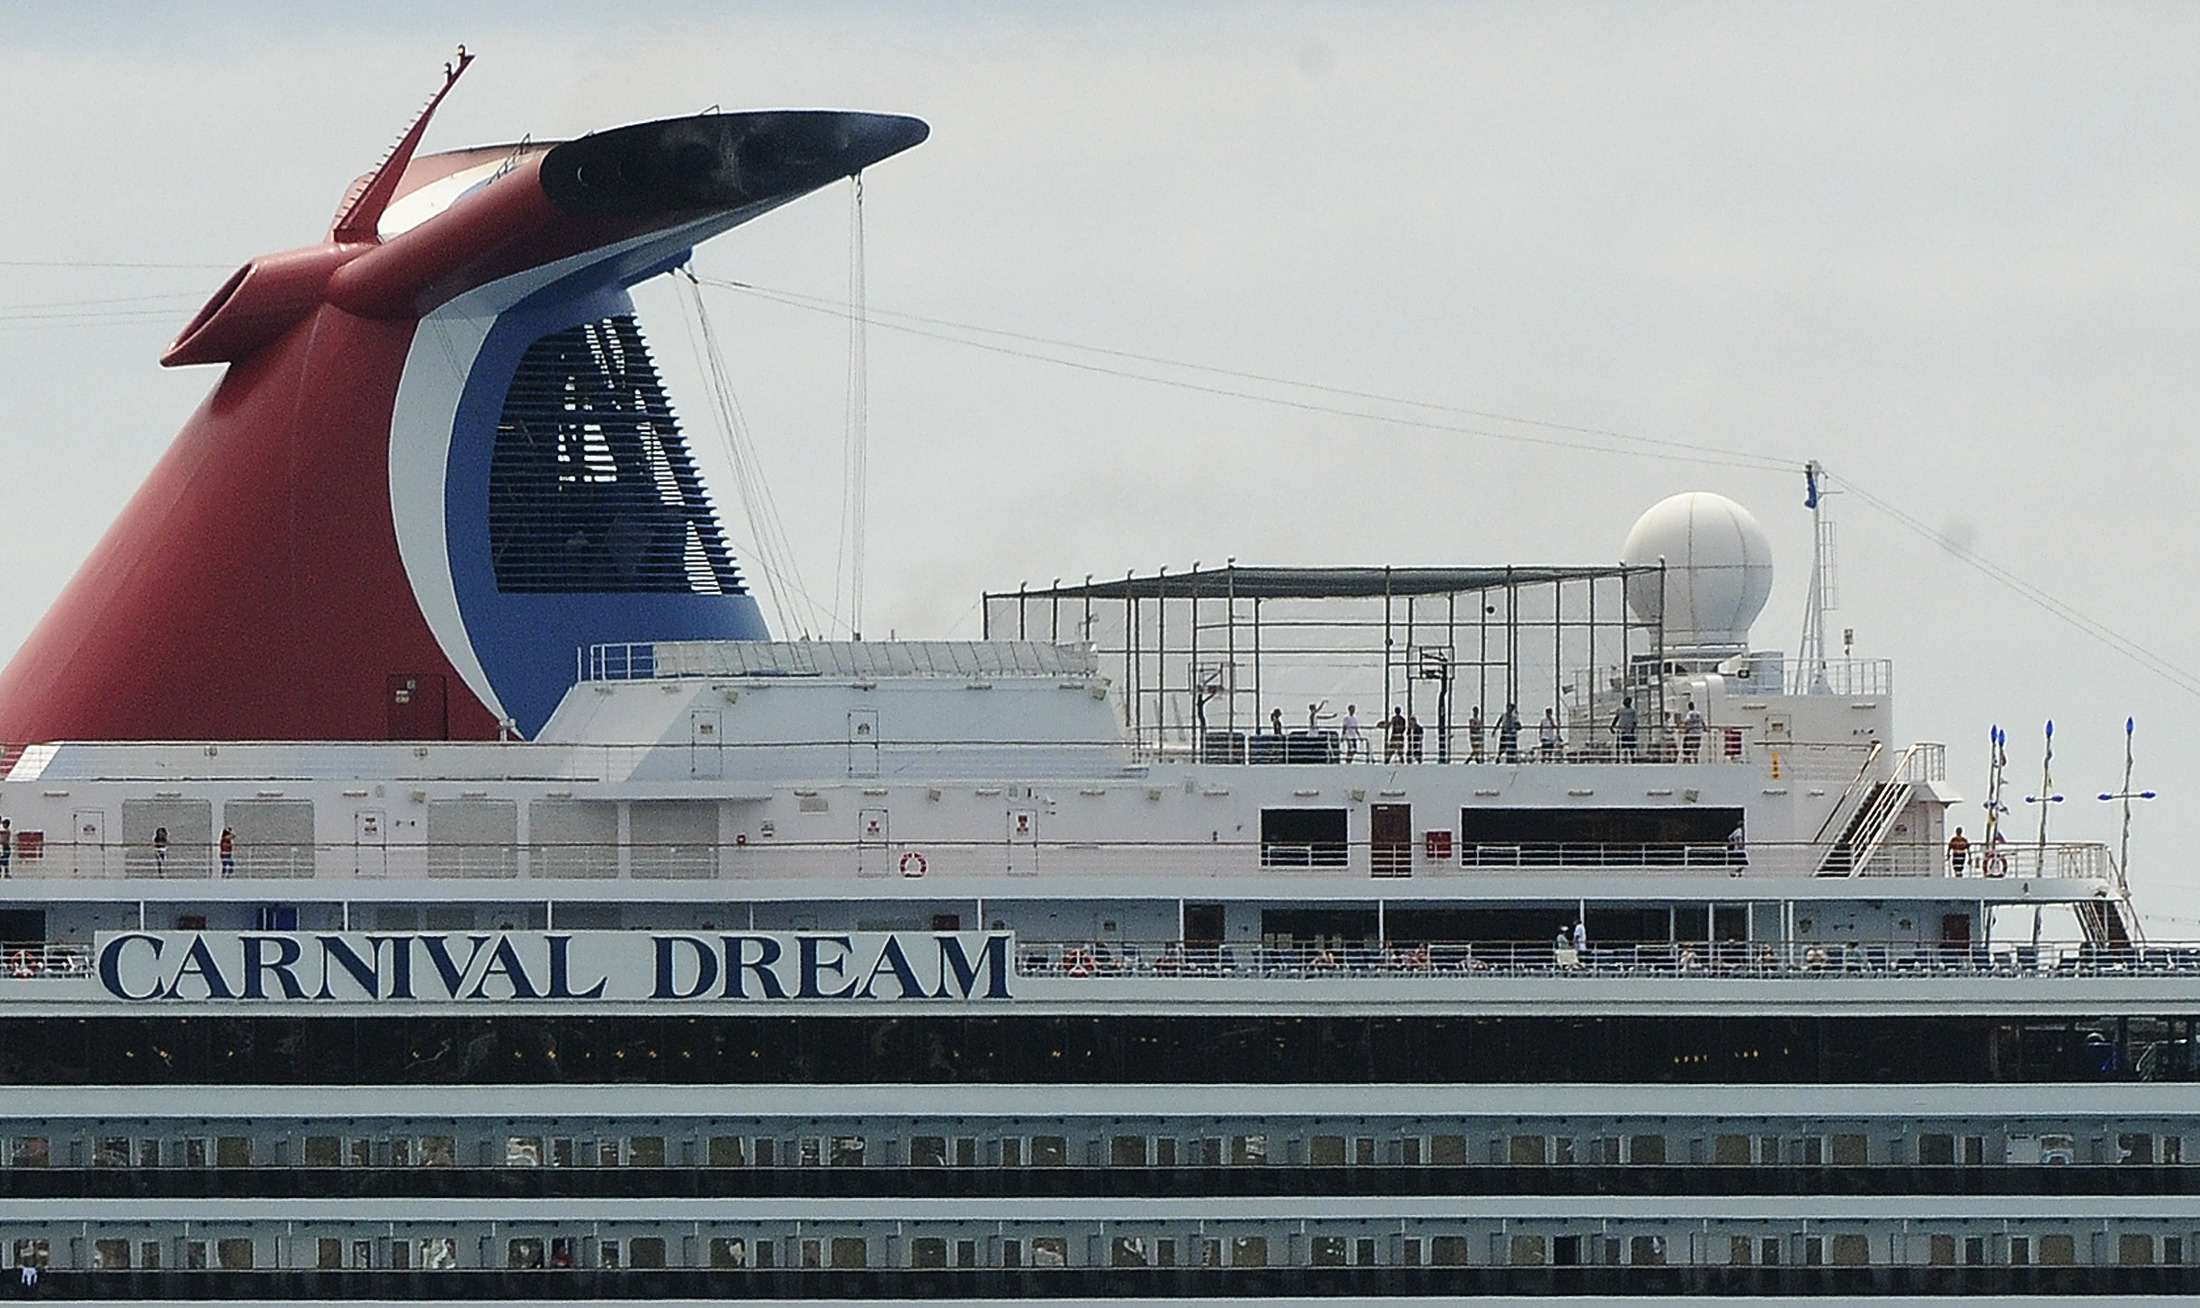 Carnival Dream cruise ship moored at the A.C. Wathey Cruise Facilities after a diesel generator malfunctioned causing temporary disruptions, in Philipsburg